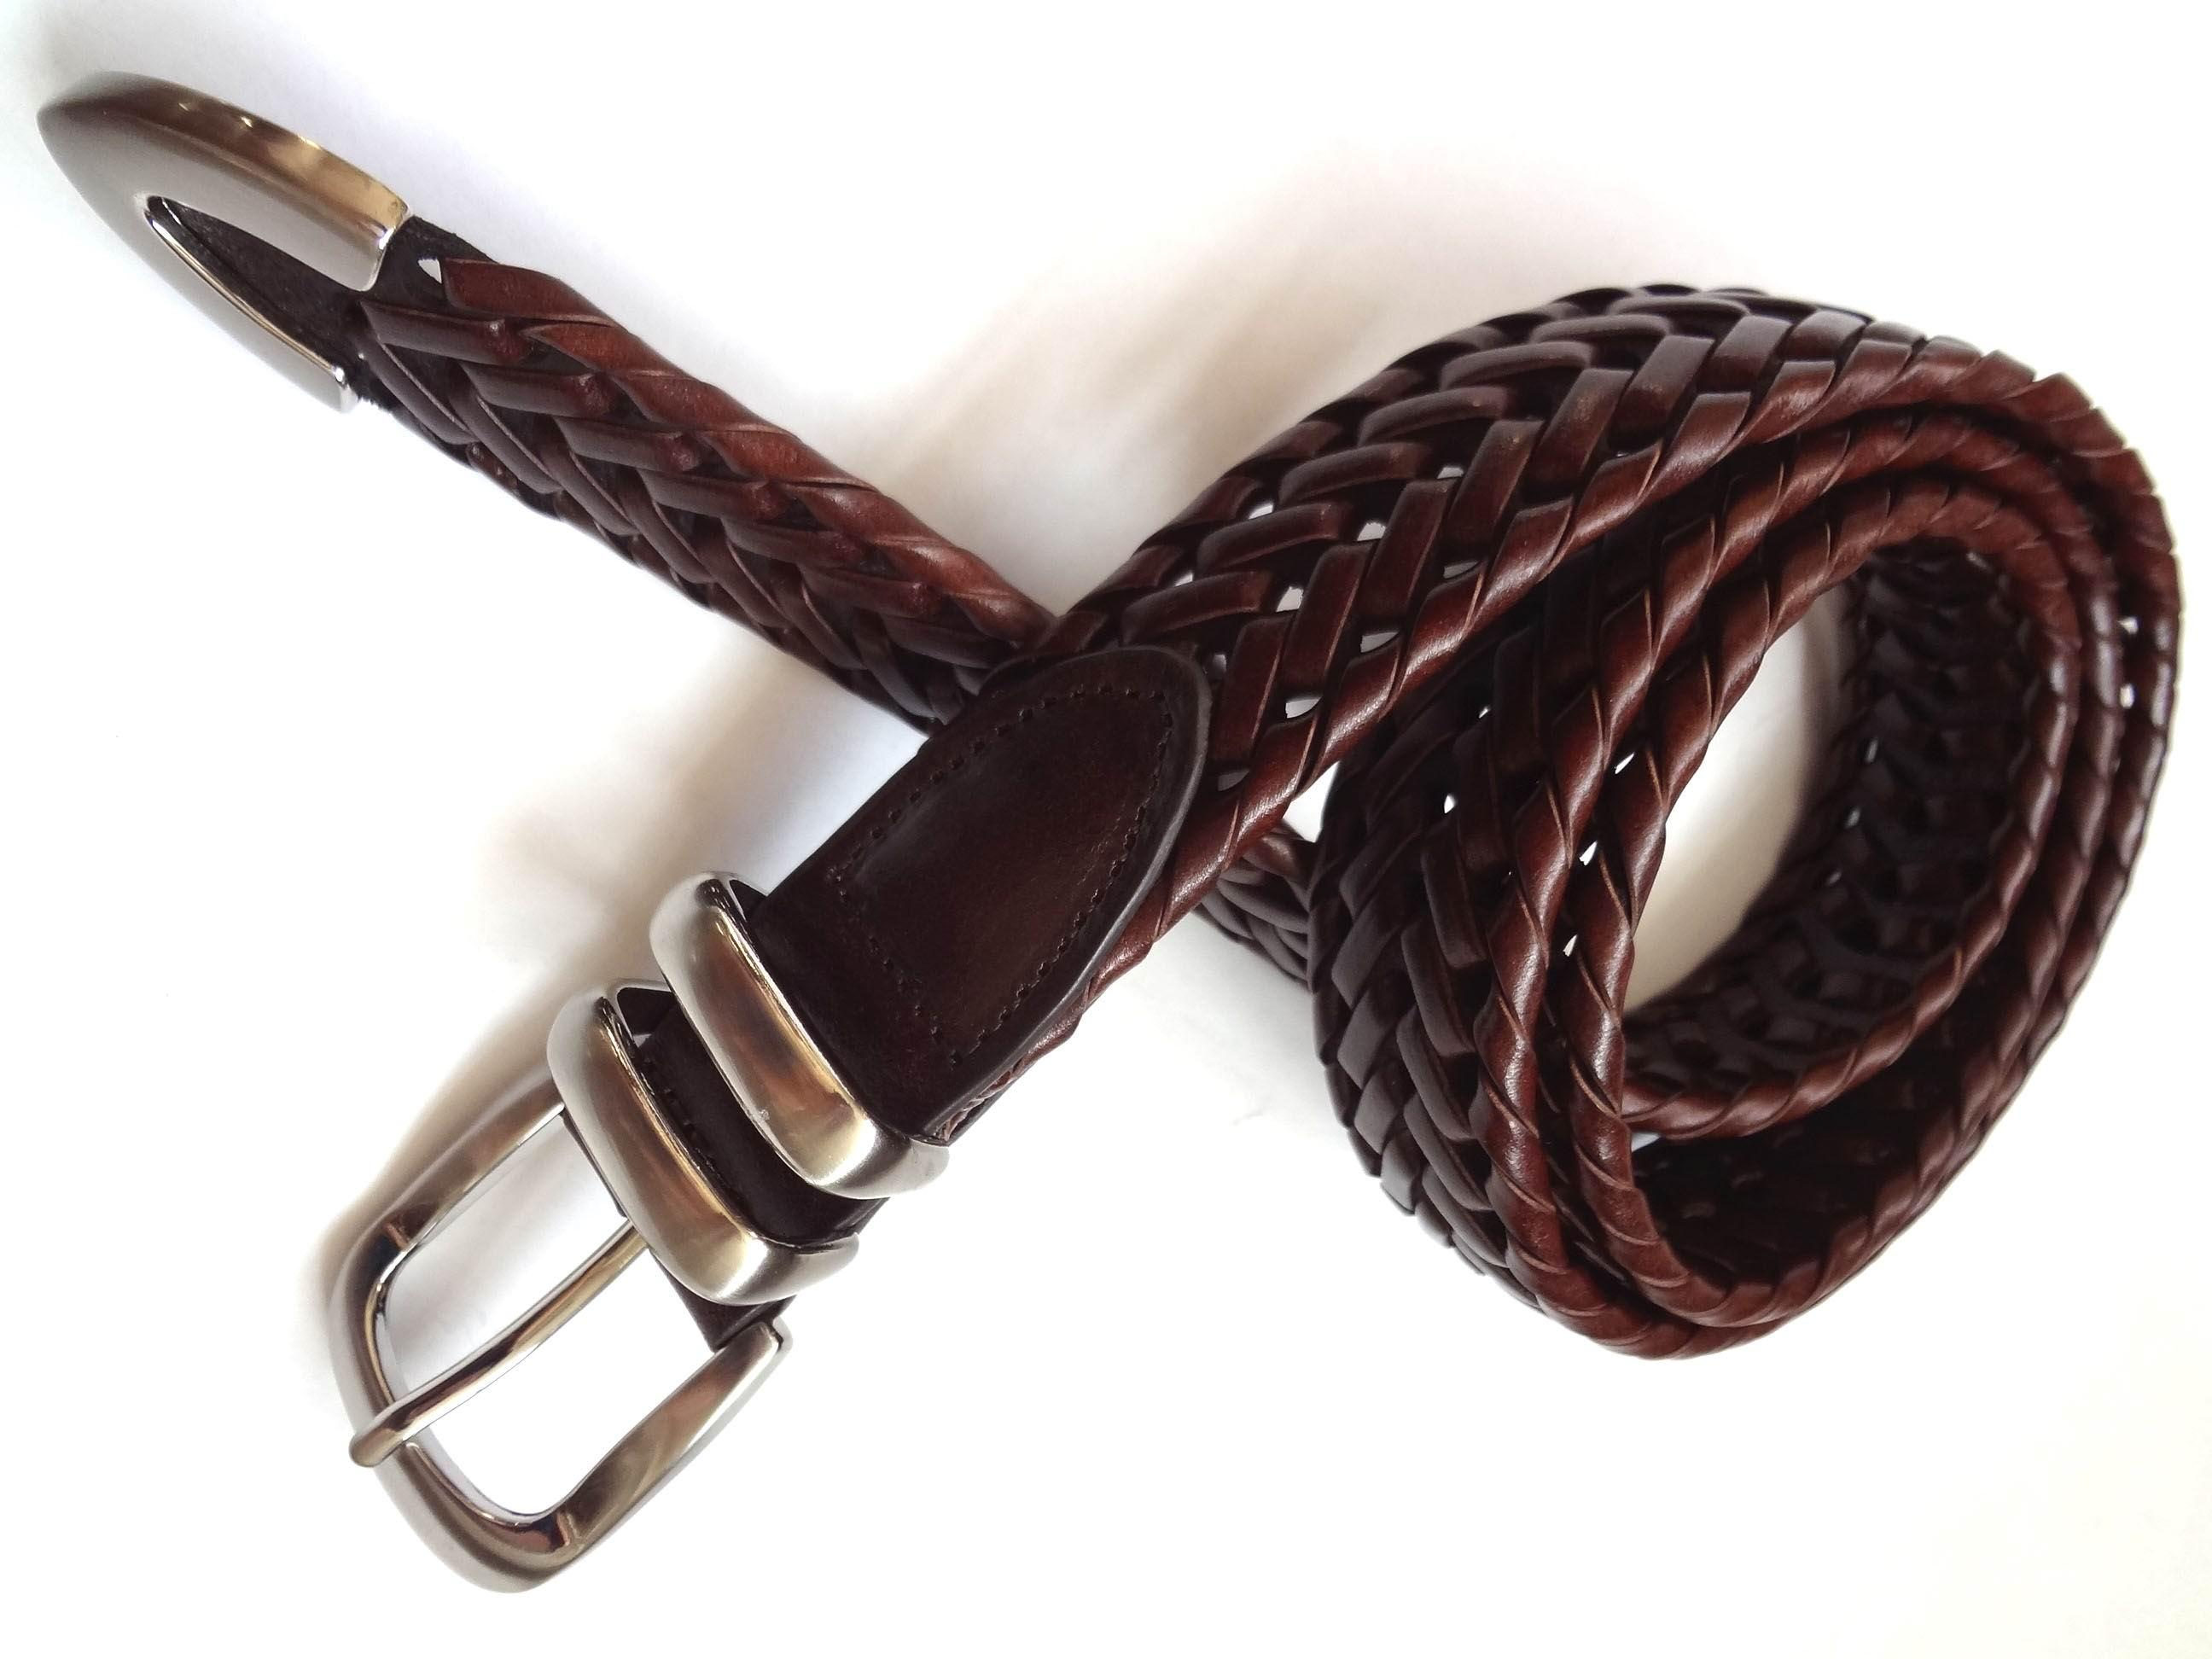 Western Jean Braided Leather Belt Burnished Casual Braided Belt